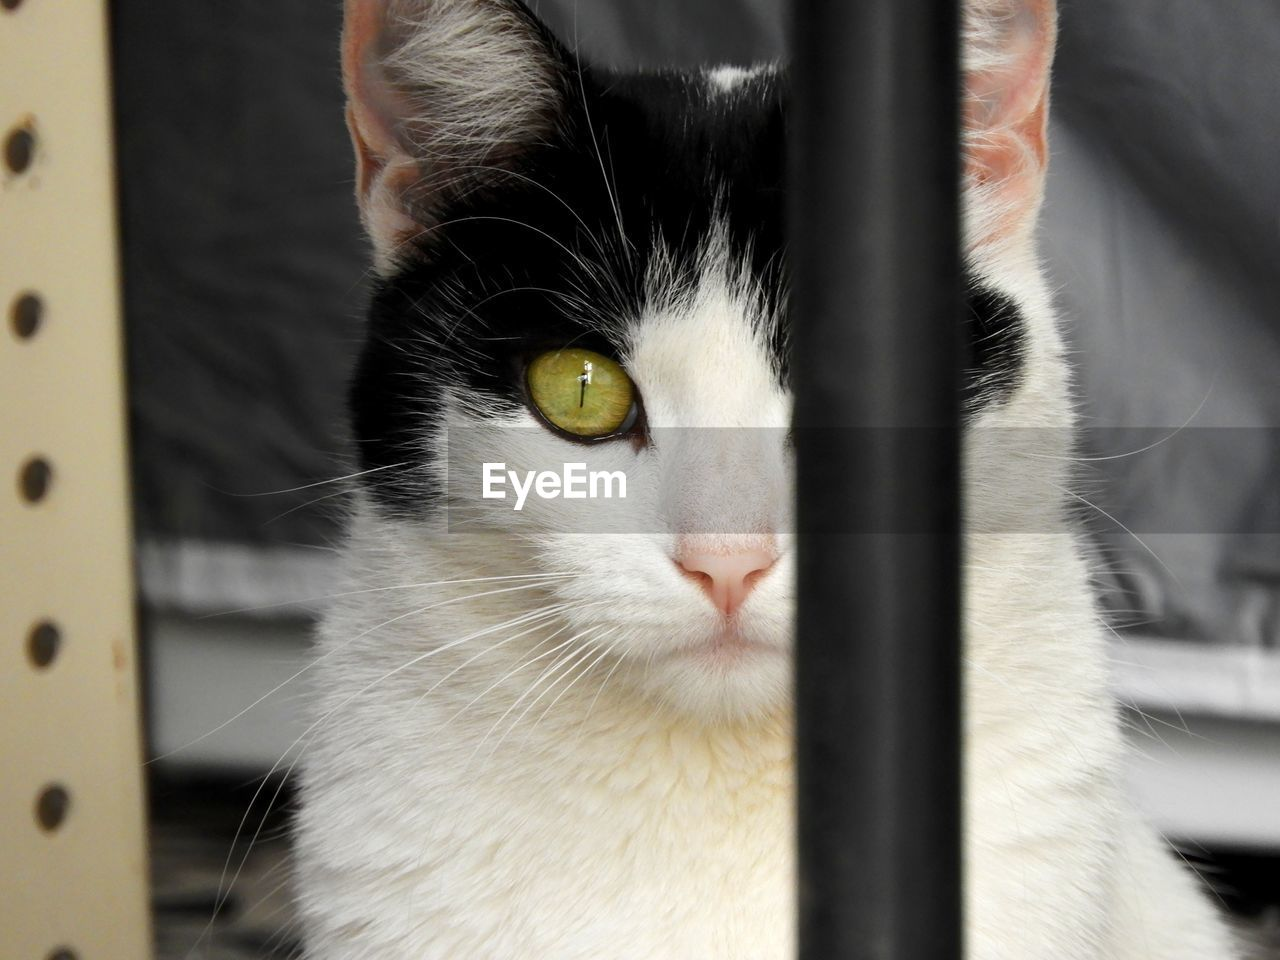 domestic, pets, domestic animals, one animal, animal themes, mammal, animal, cat, feline, domestic cat, whisker, close-up, vertebrate, portrait, no people, focus on foreground, animal body part, looking at camera, metal, animal head, animal eye, yellow eyes